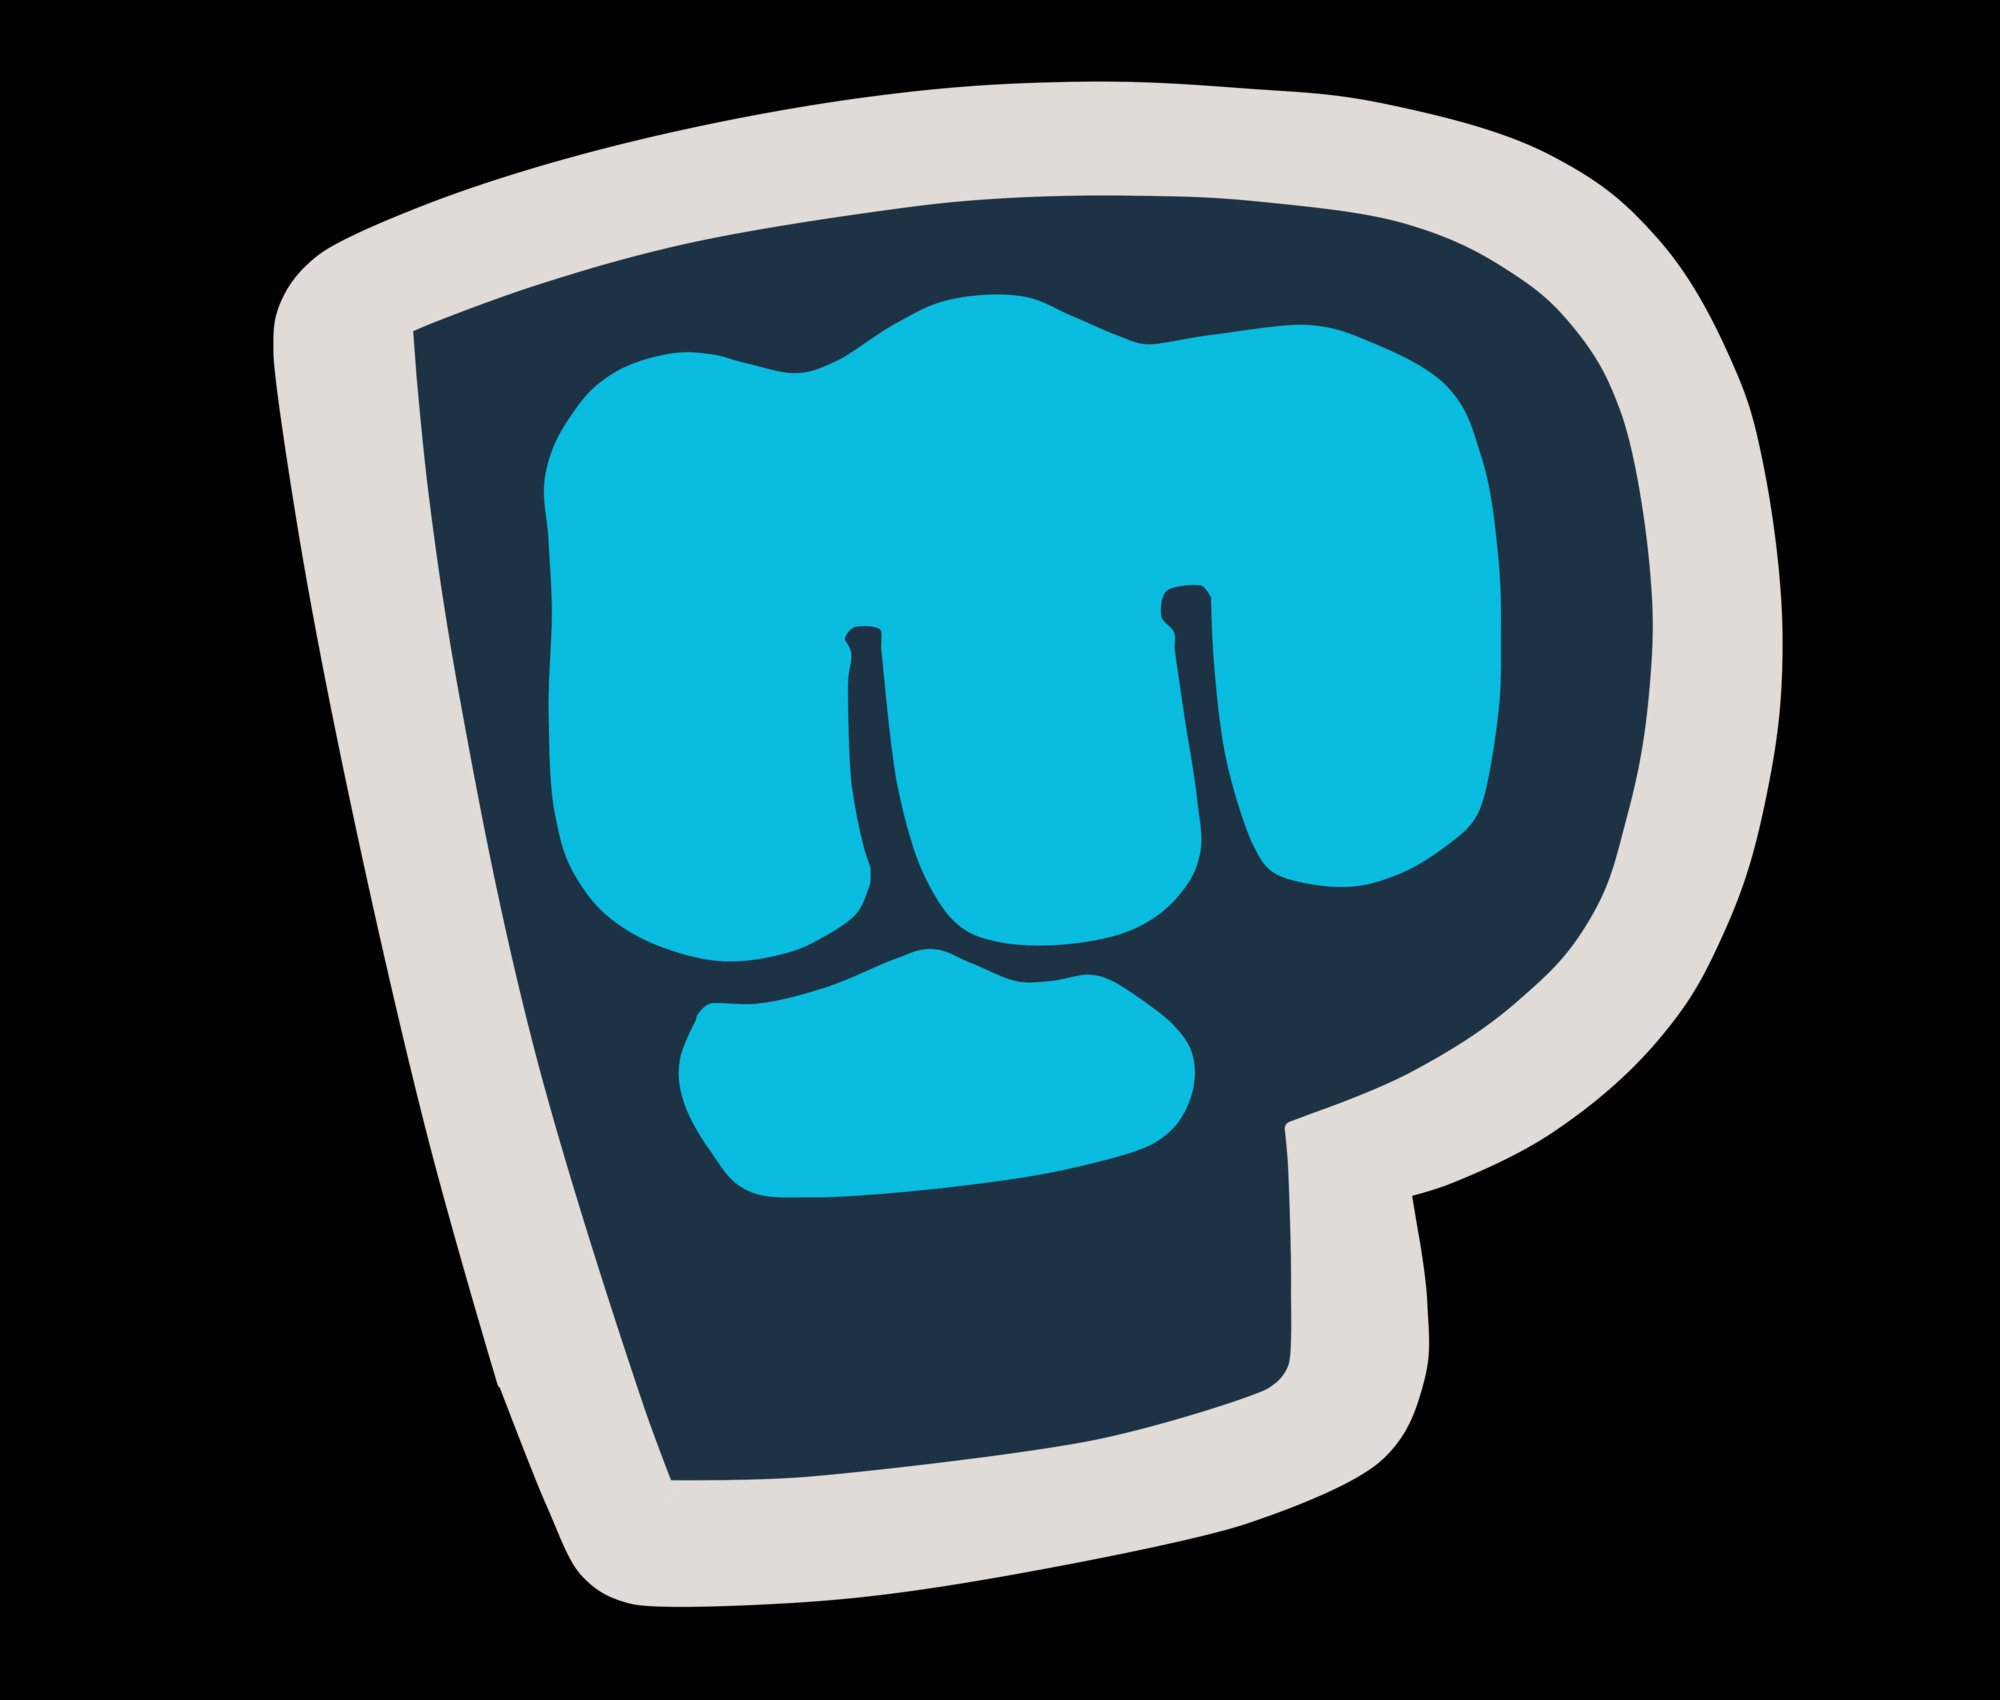 Pewdiepie Symbol Images Of Letter Naa Logo